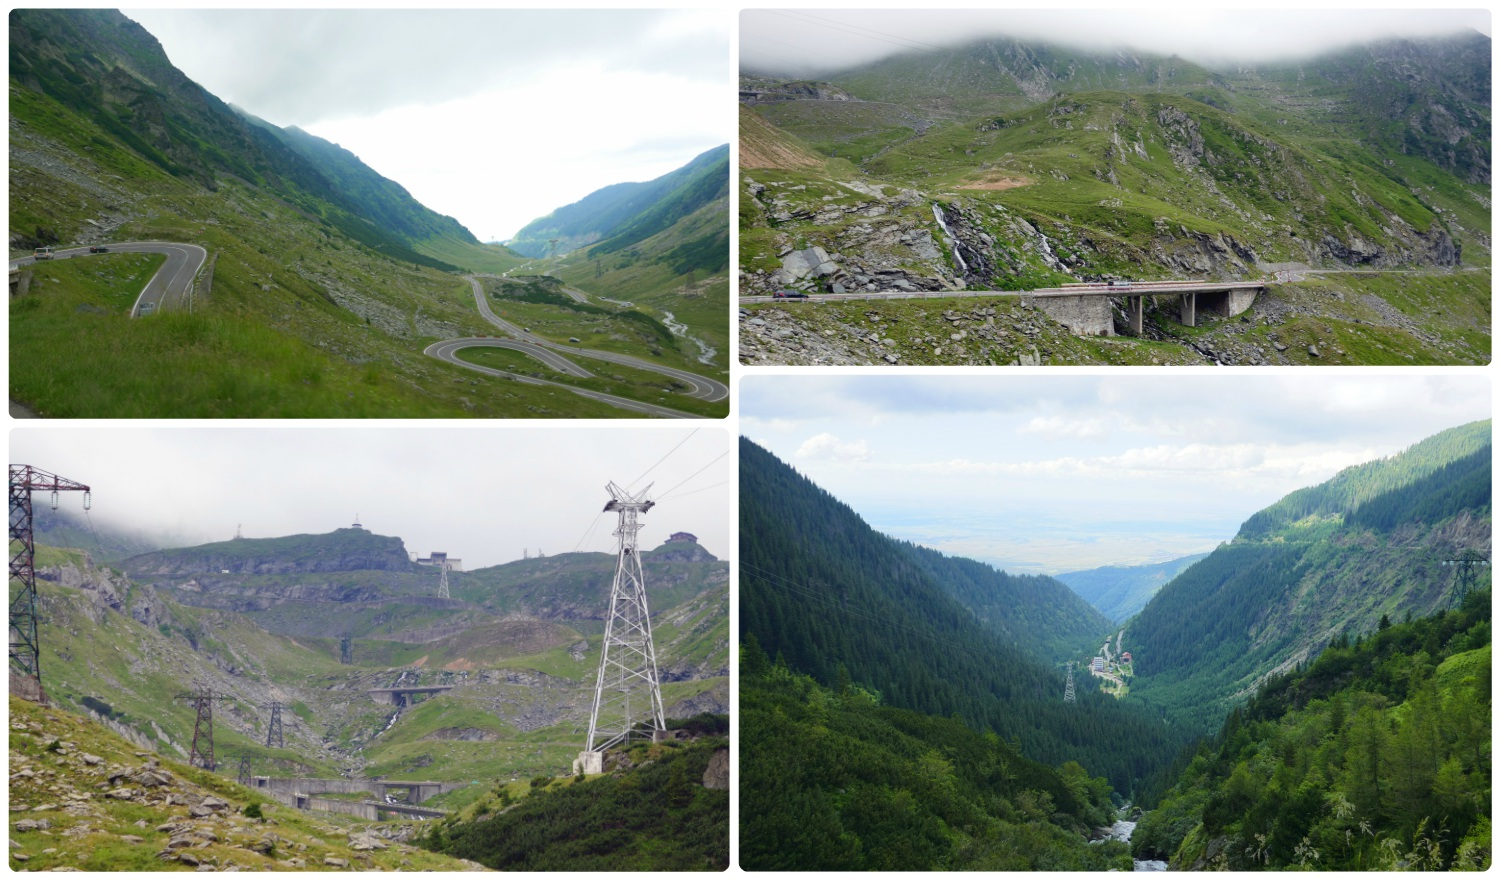 Clockwise (from the top): A view of the switchbacks down the mountain on the Transfagarasan Highway, the bridges and waterfalls as we drove down the mountain, a view of the valley and the town at the bottom of the mountains, a view from the bottom looking up the mountains.